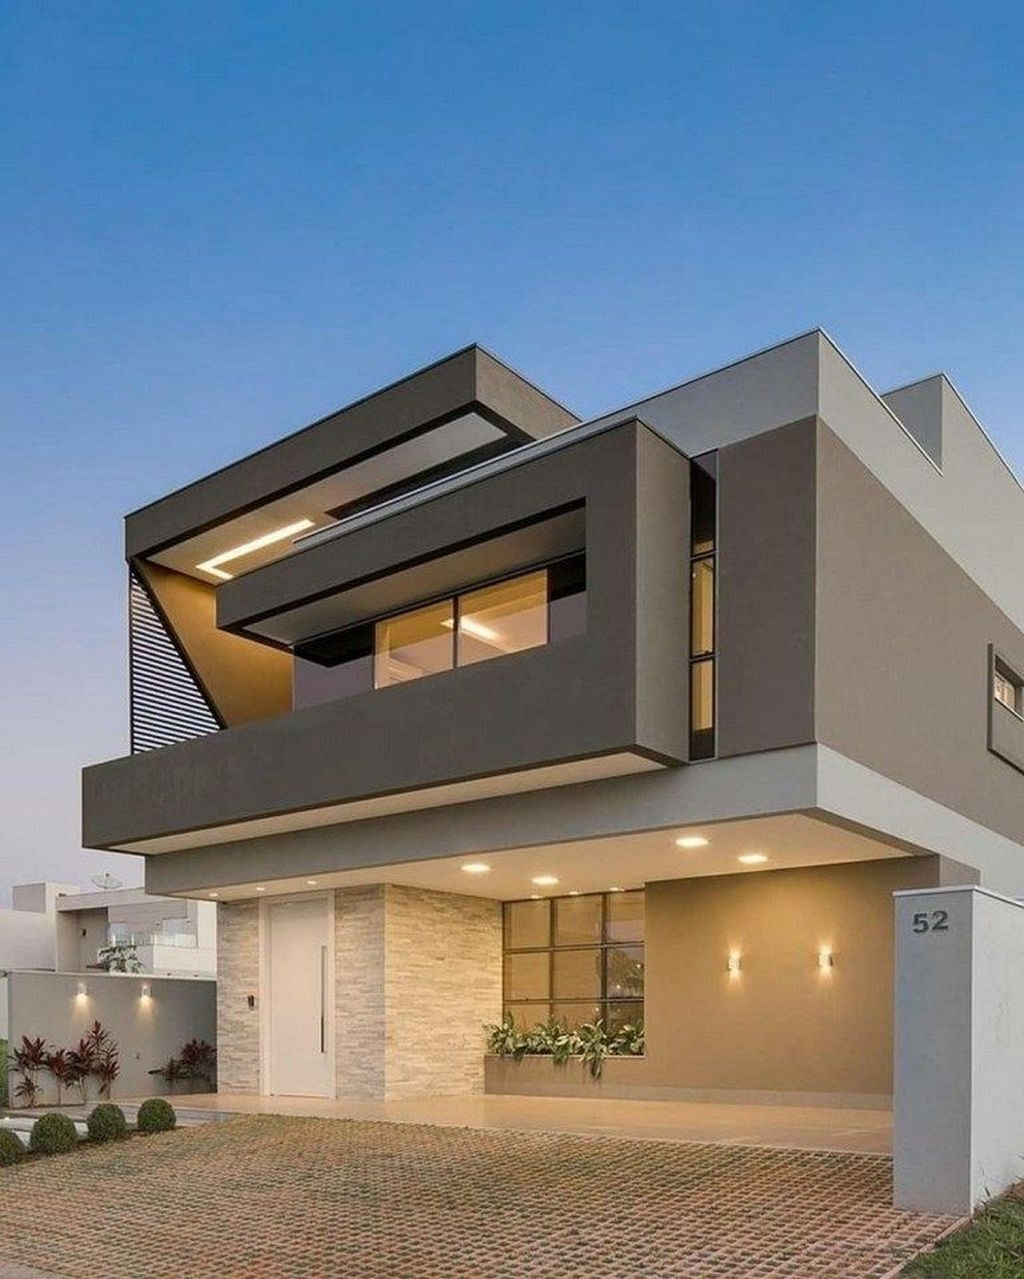 Charming Minimalist House Plan Ideas That You Can Make Inspiration20